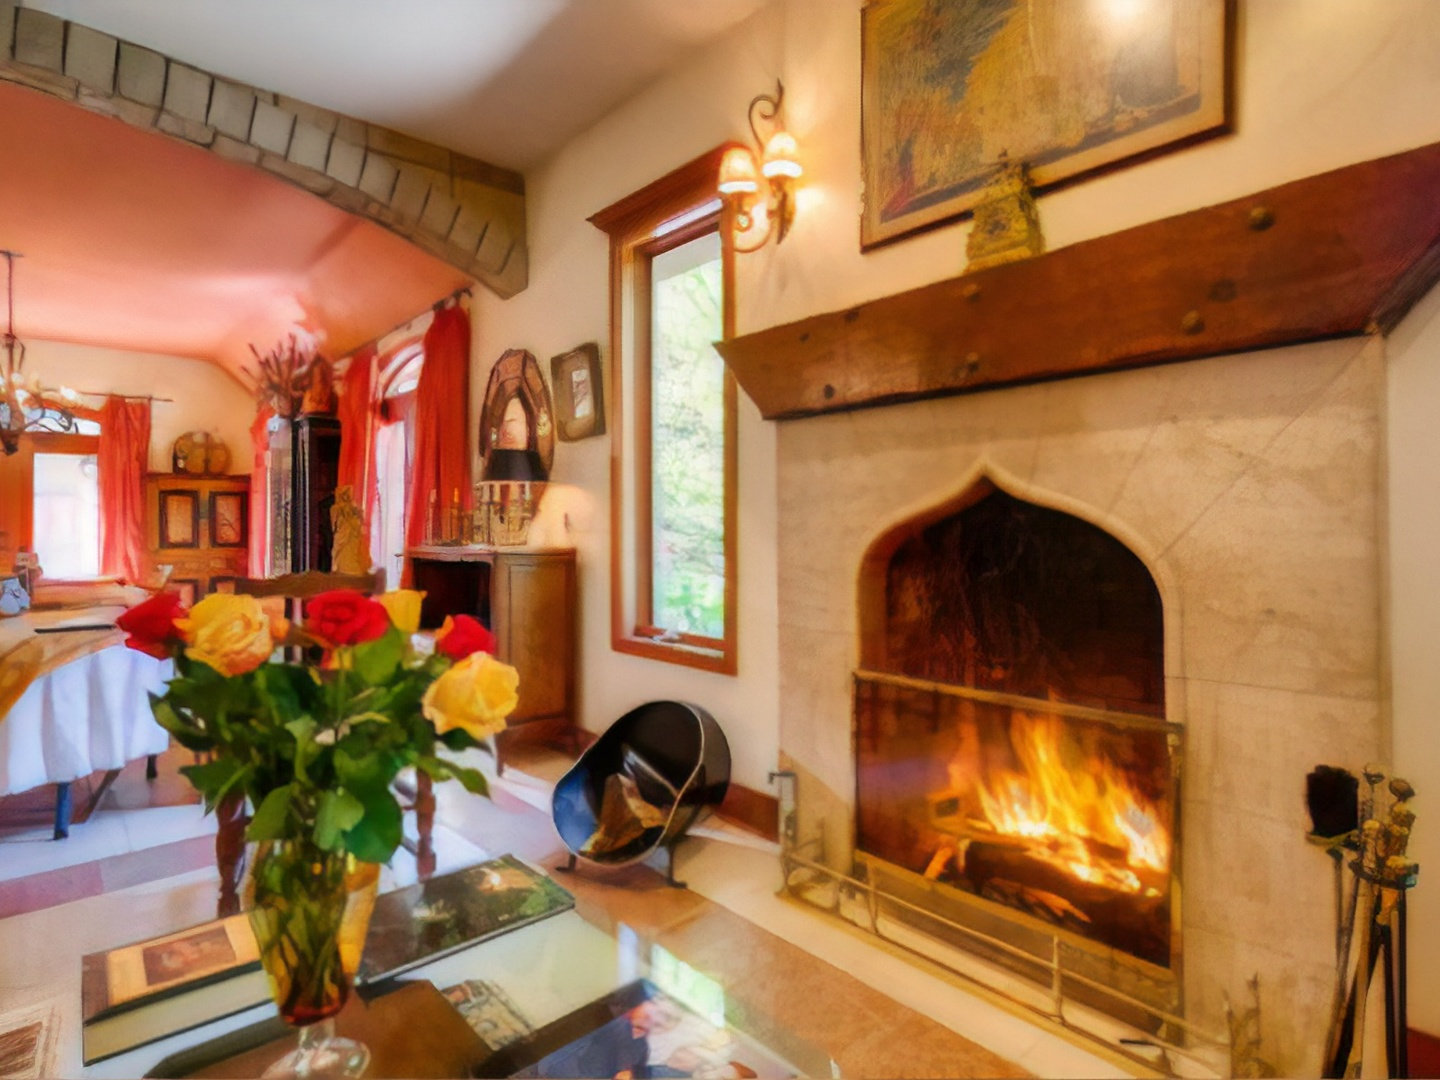 A fire place and a fireplace at Auberge de Seattle French Country Inn in Woodinville, WA..